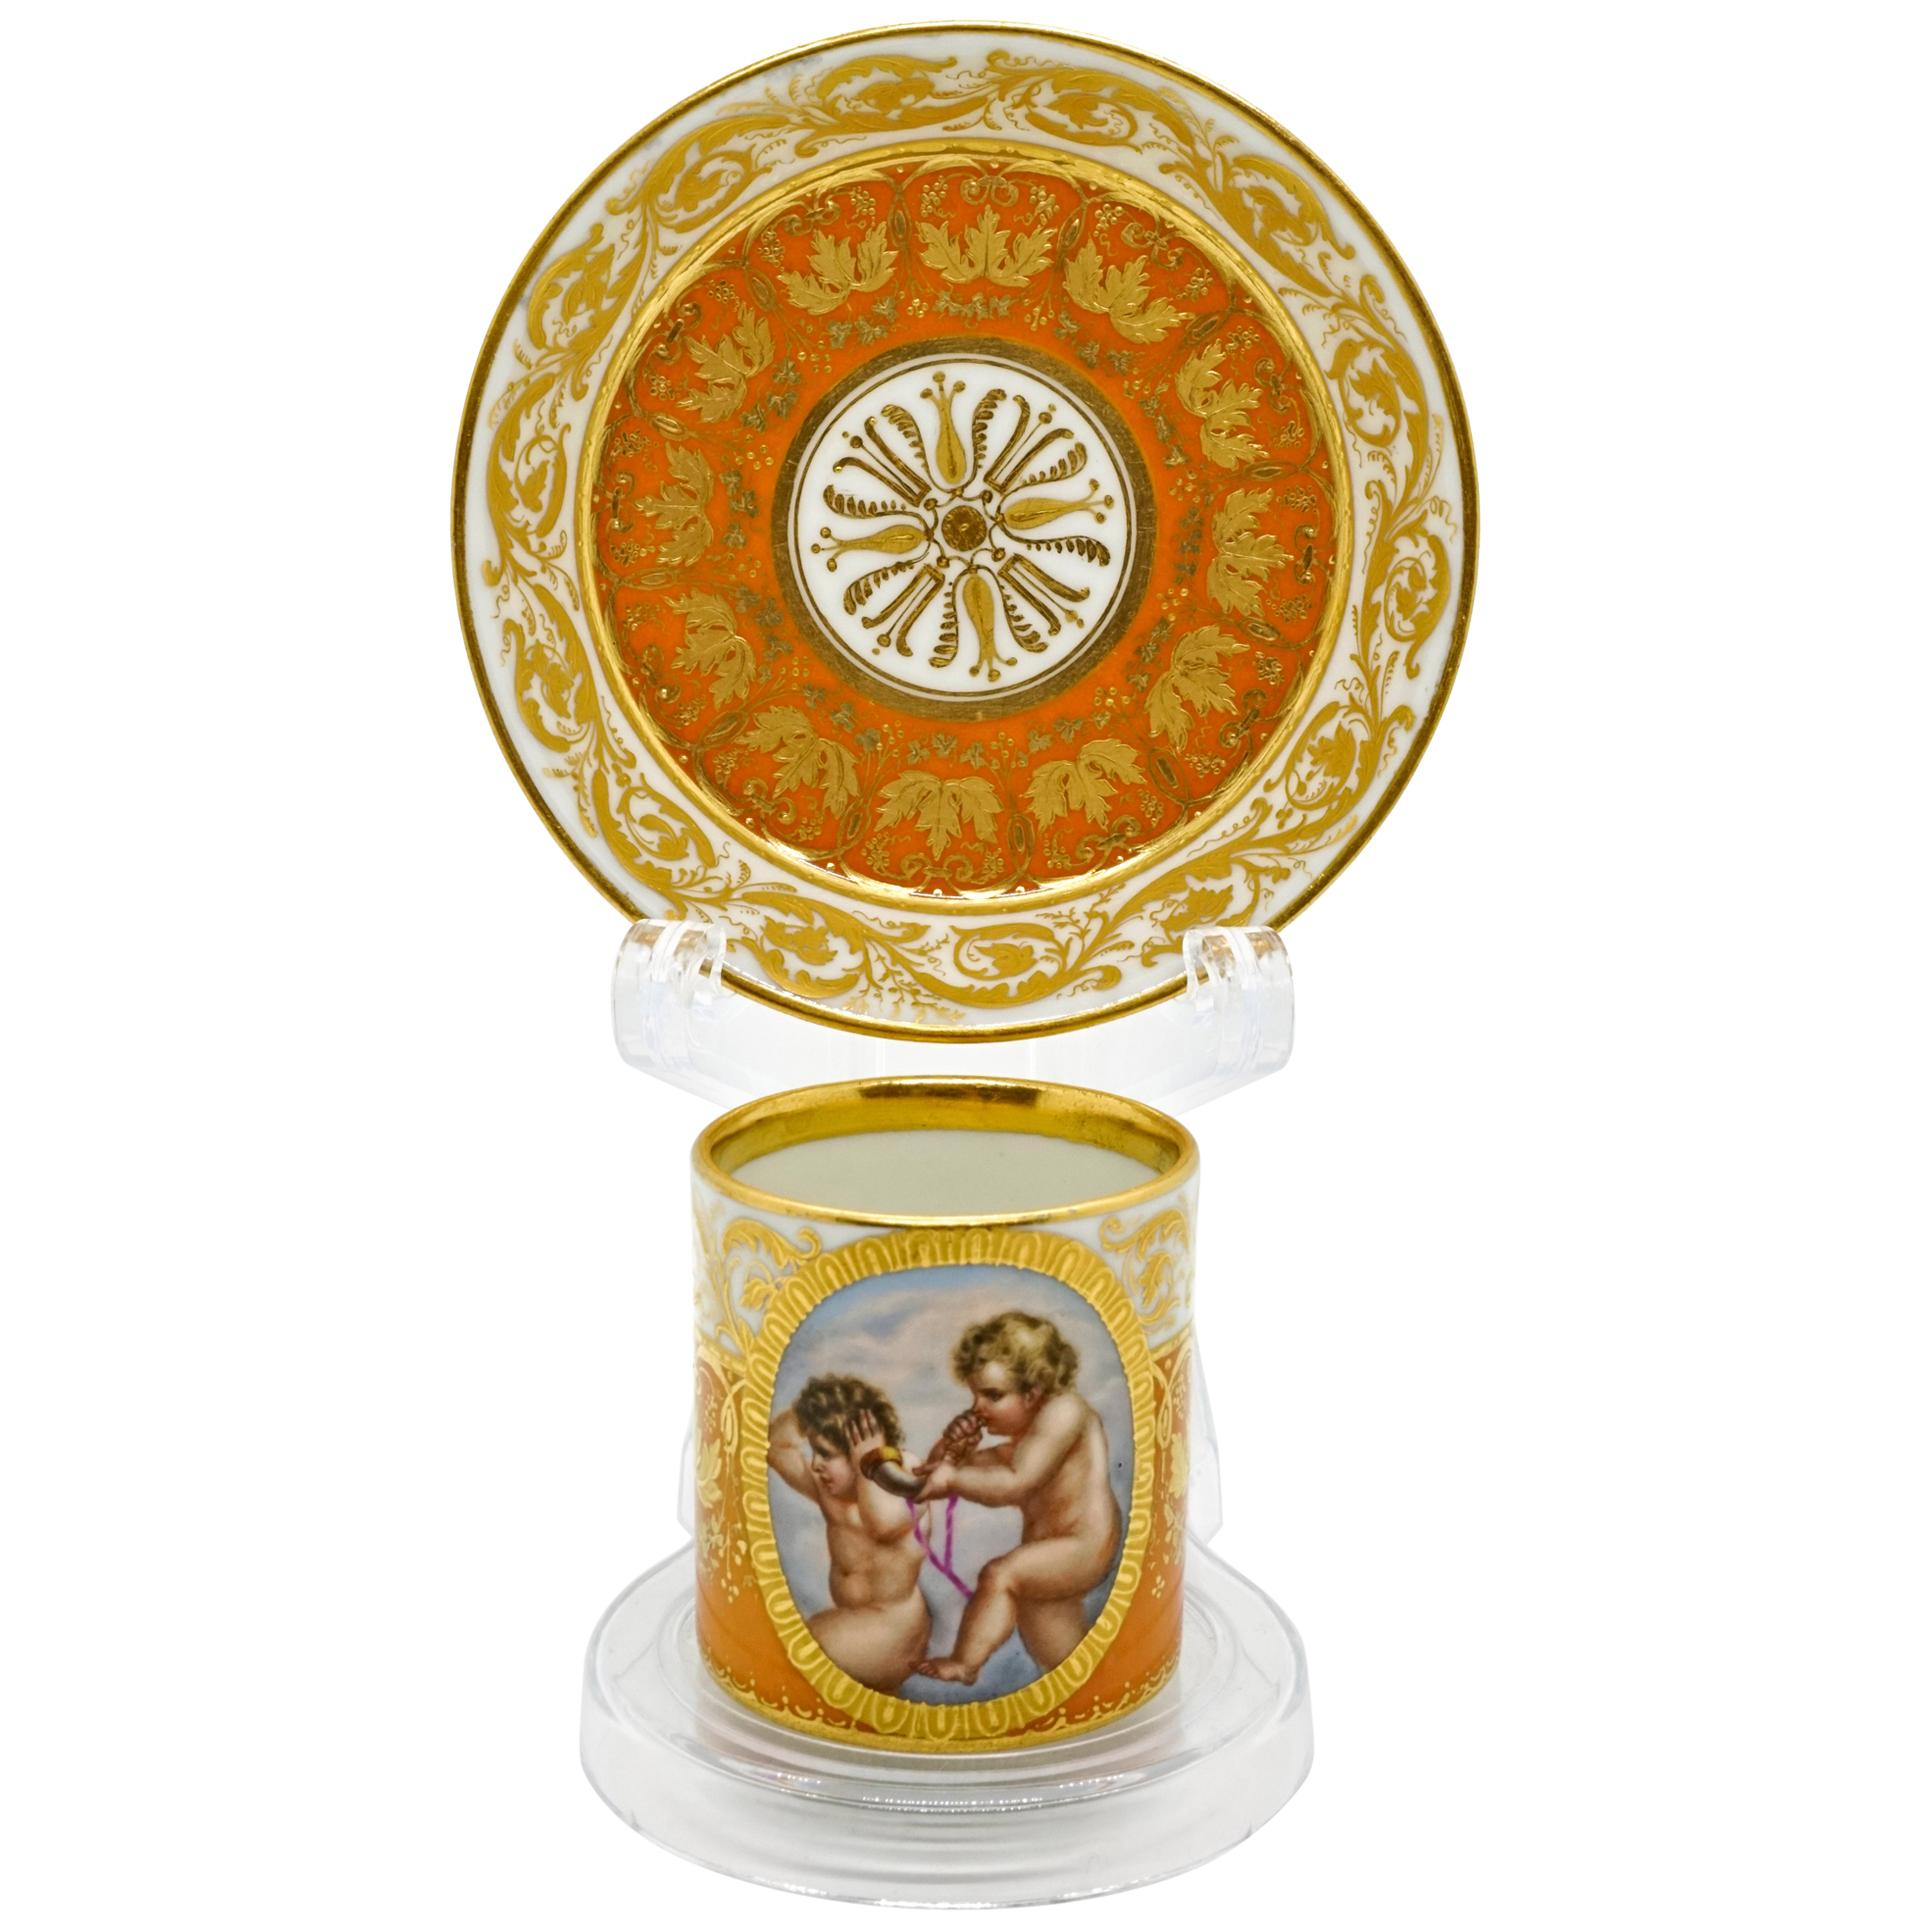 Viennese Imperial Porcelain Collecting Cup Yellow and Gold with Cupids, 1825